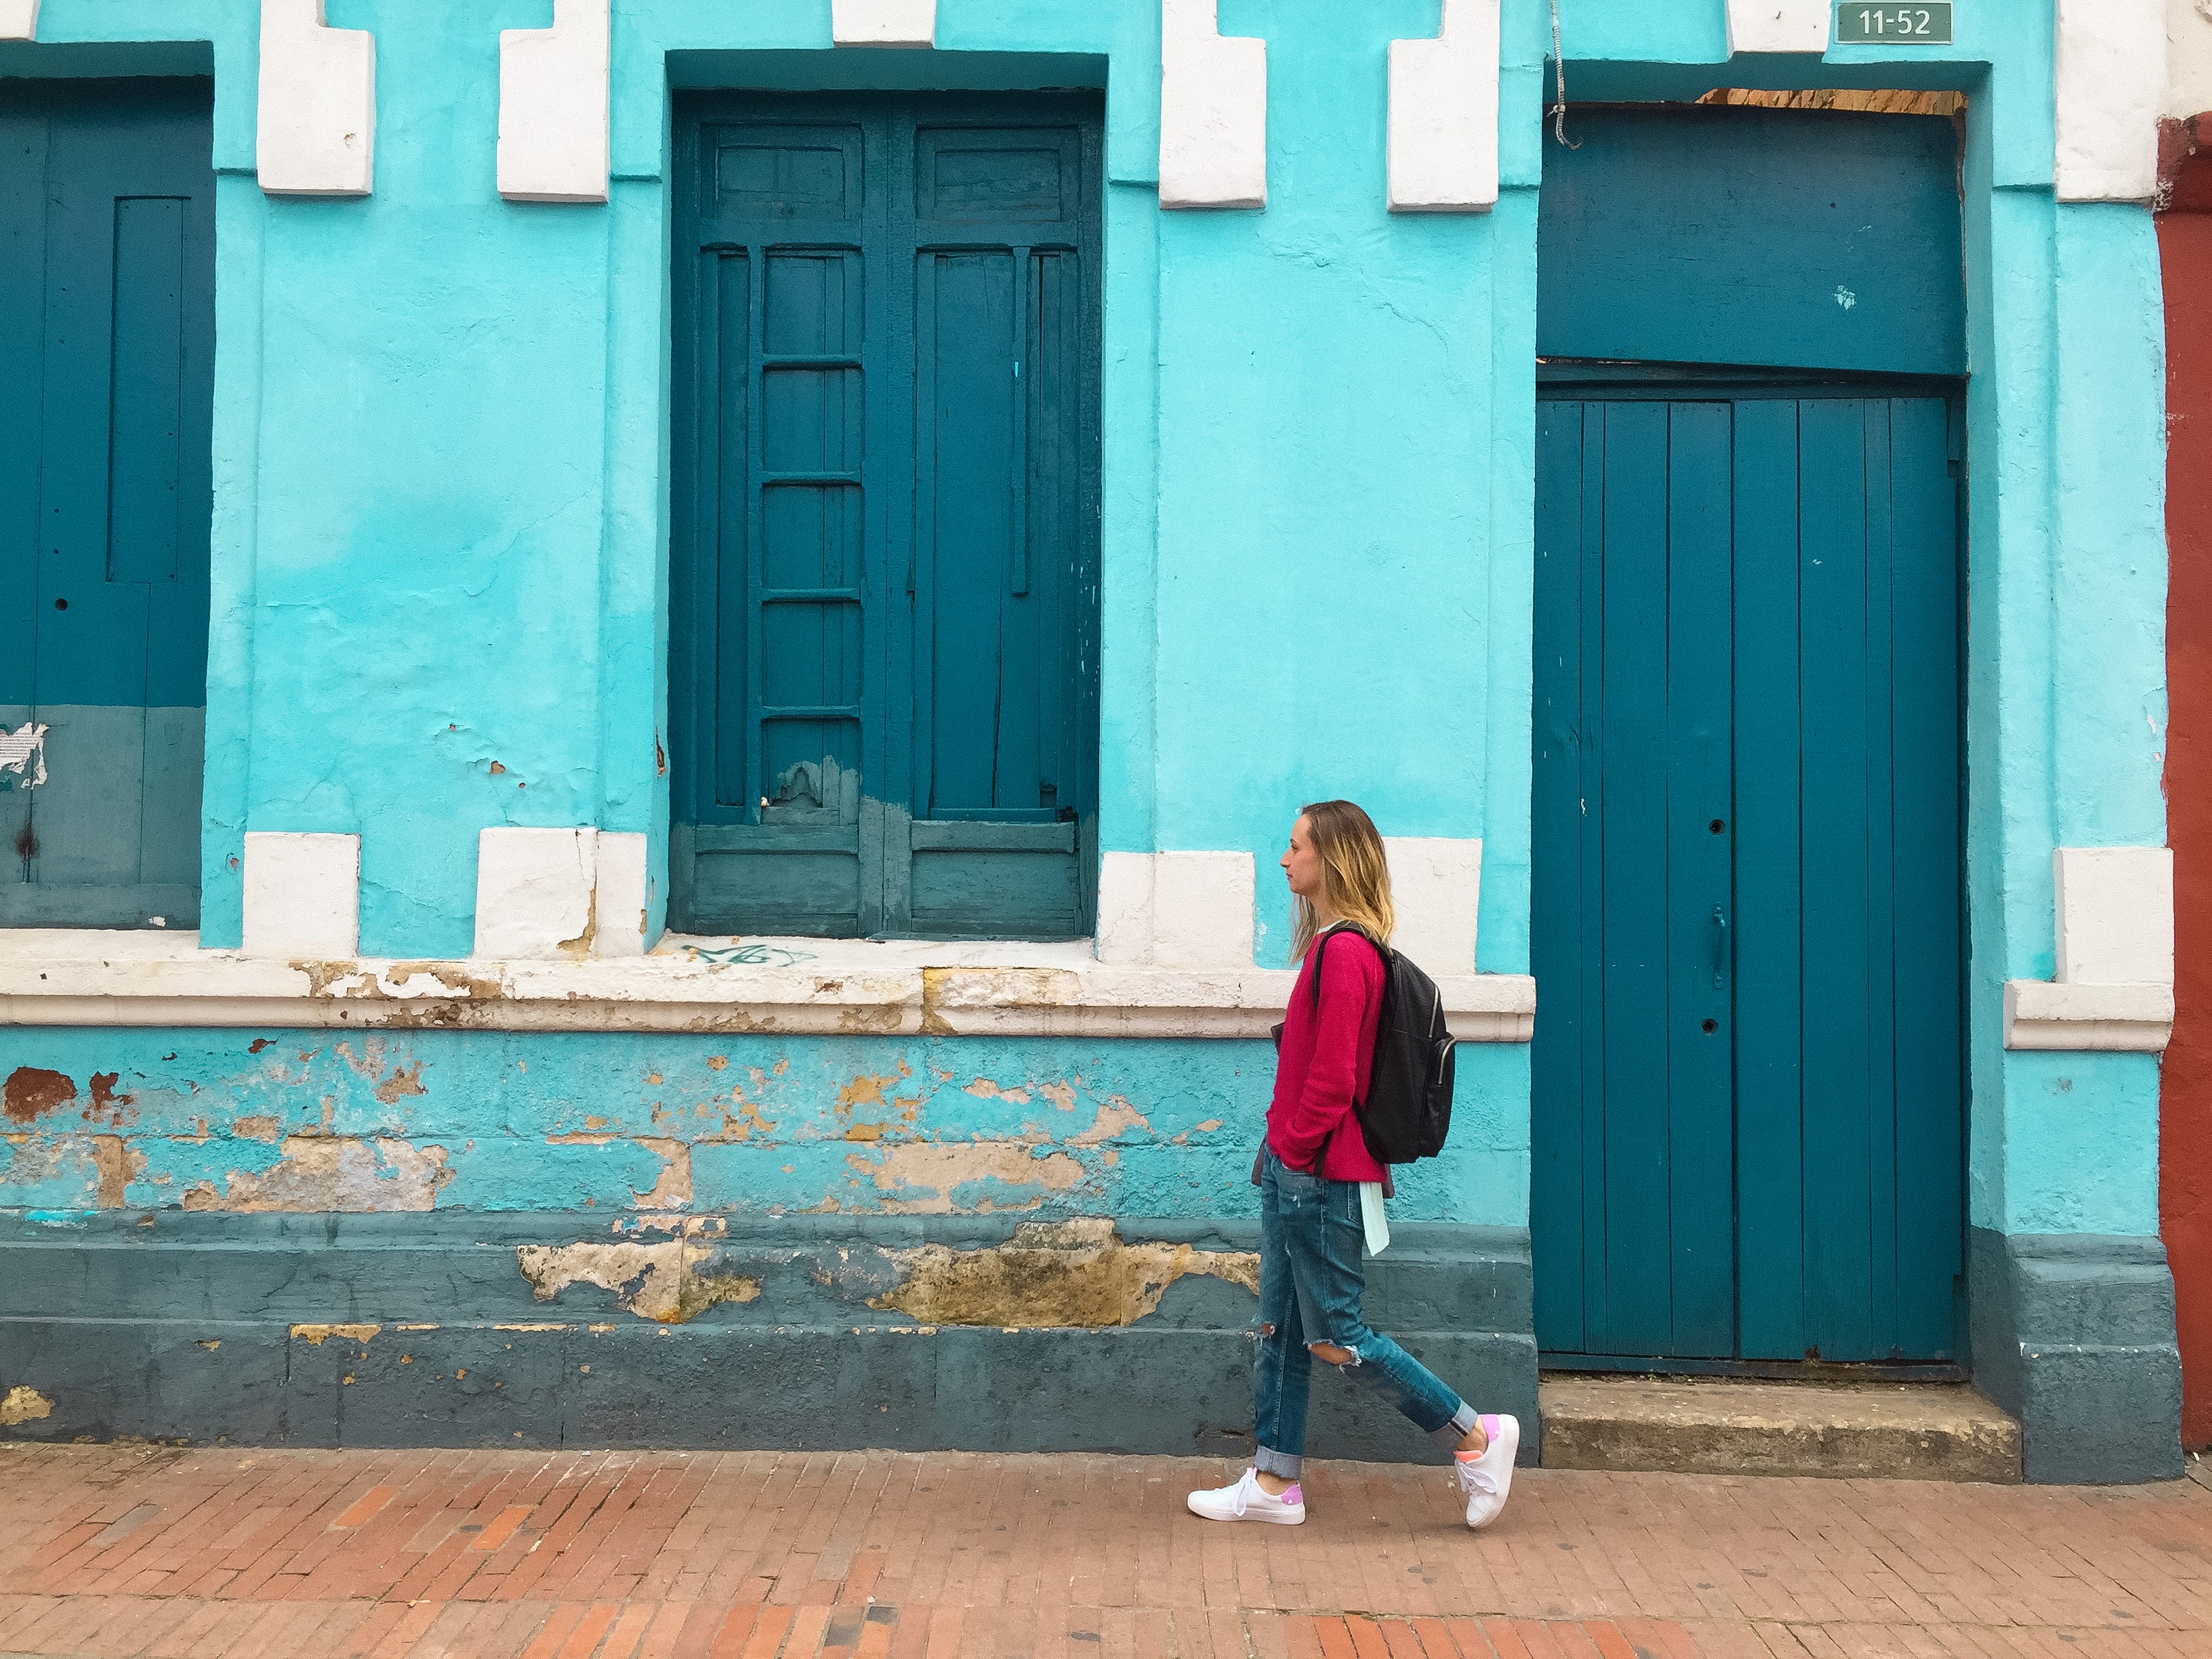 Woman Walking Street With Blue Building